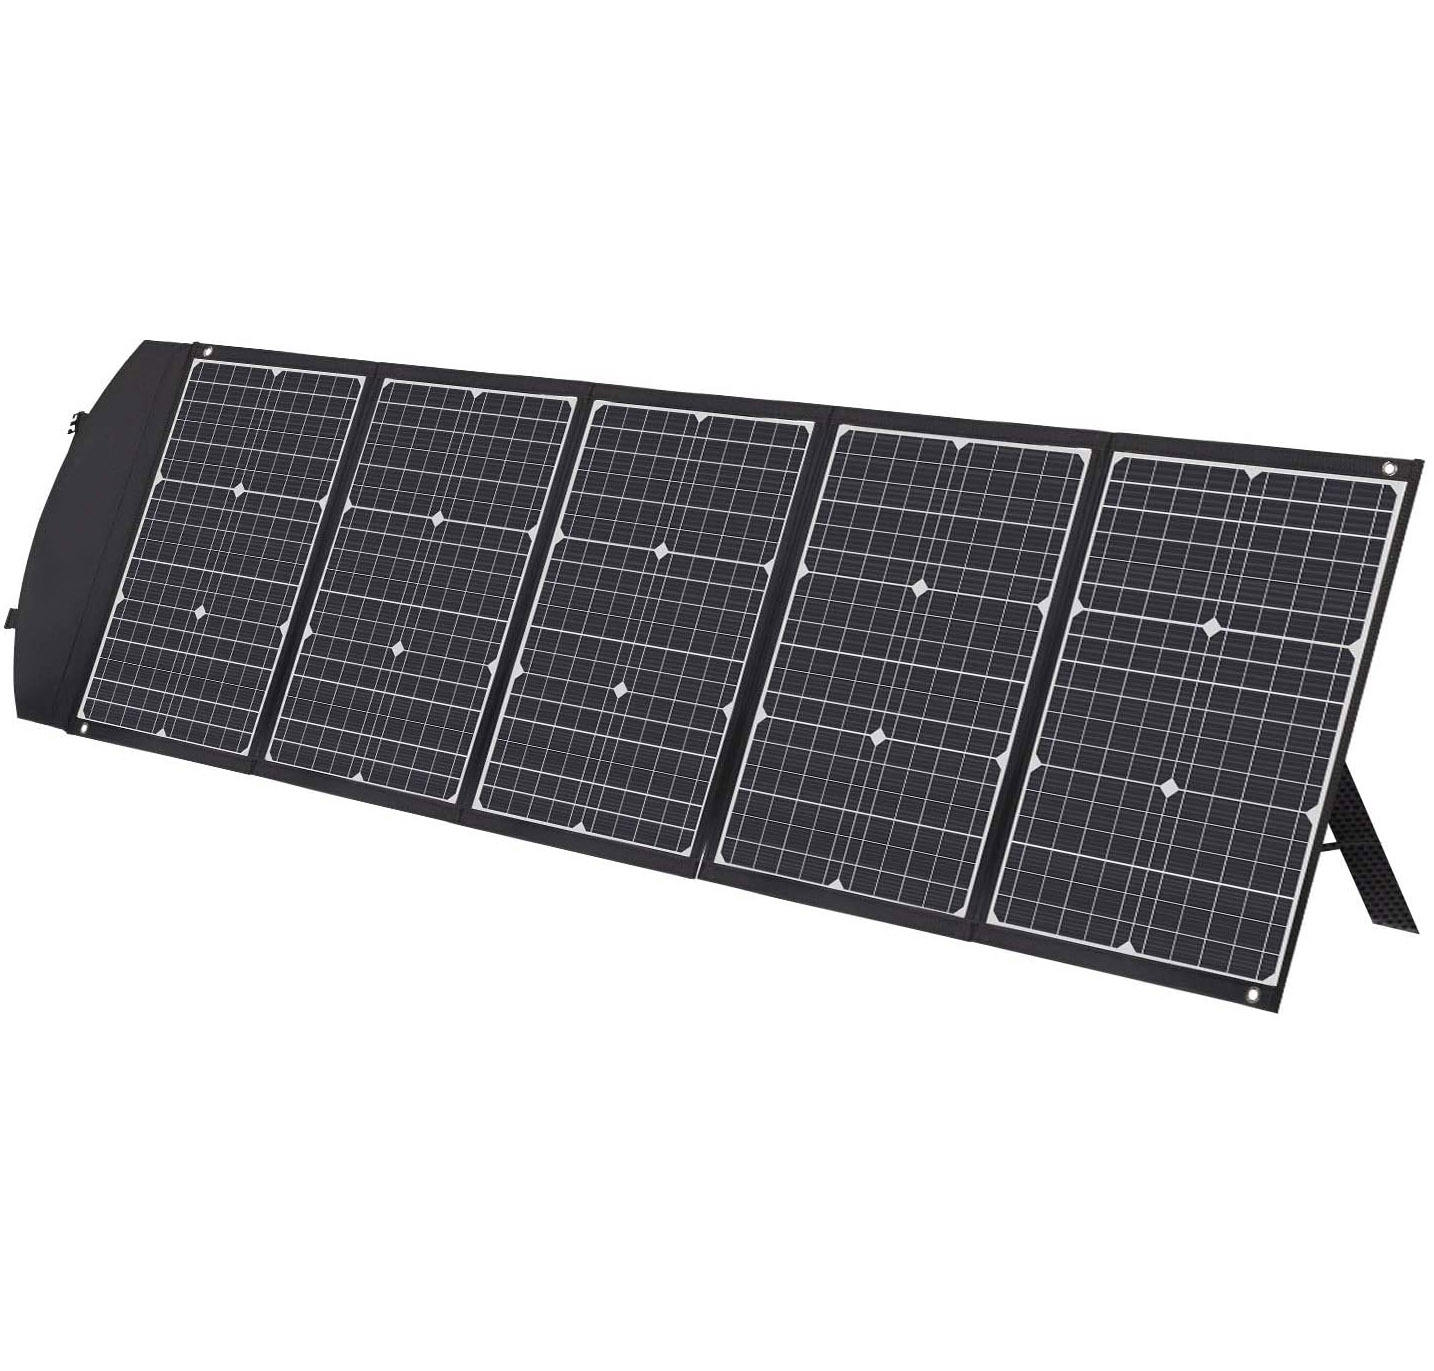 150W Solar Panel Kit Portable Solar Charger with Kickstands Type-C USB-A Compatible with Suaoki Jackery Goal Zero Power Station,